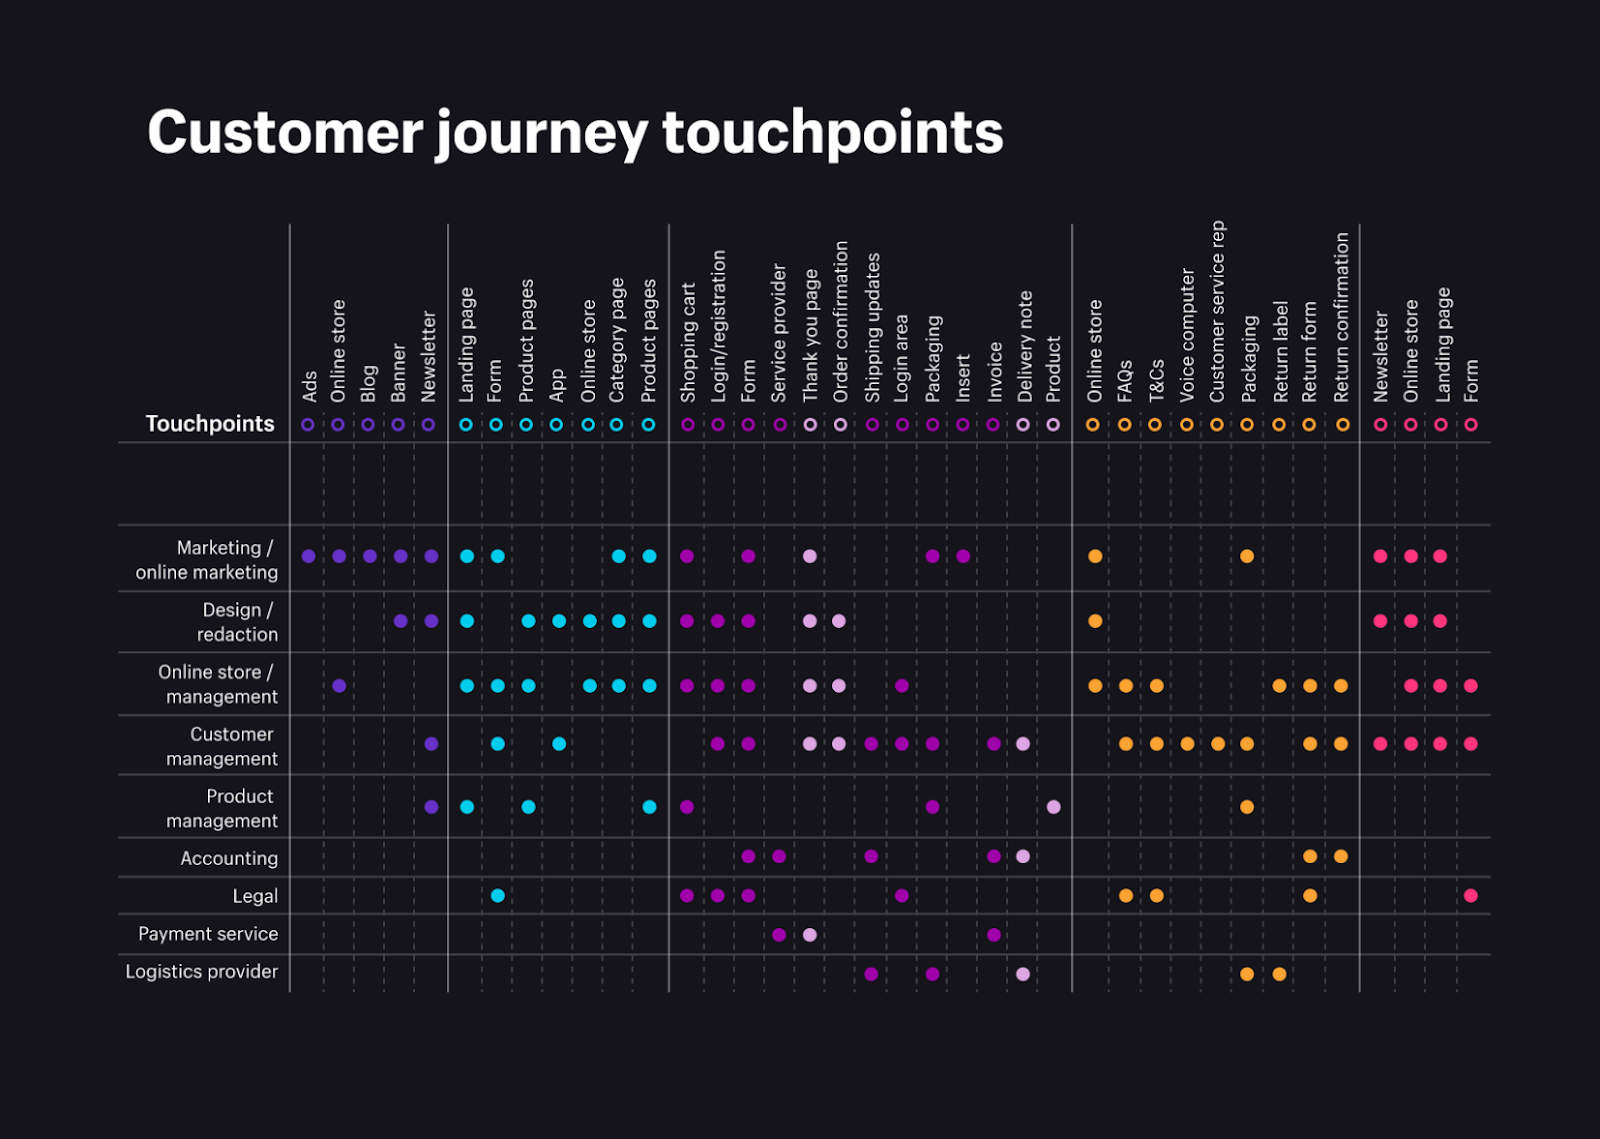 There are many customer journey touchpoints that occur from pre-purchase phases through post-purchase phases